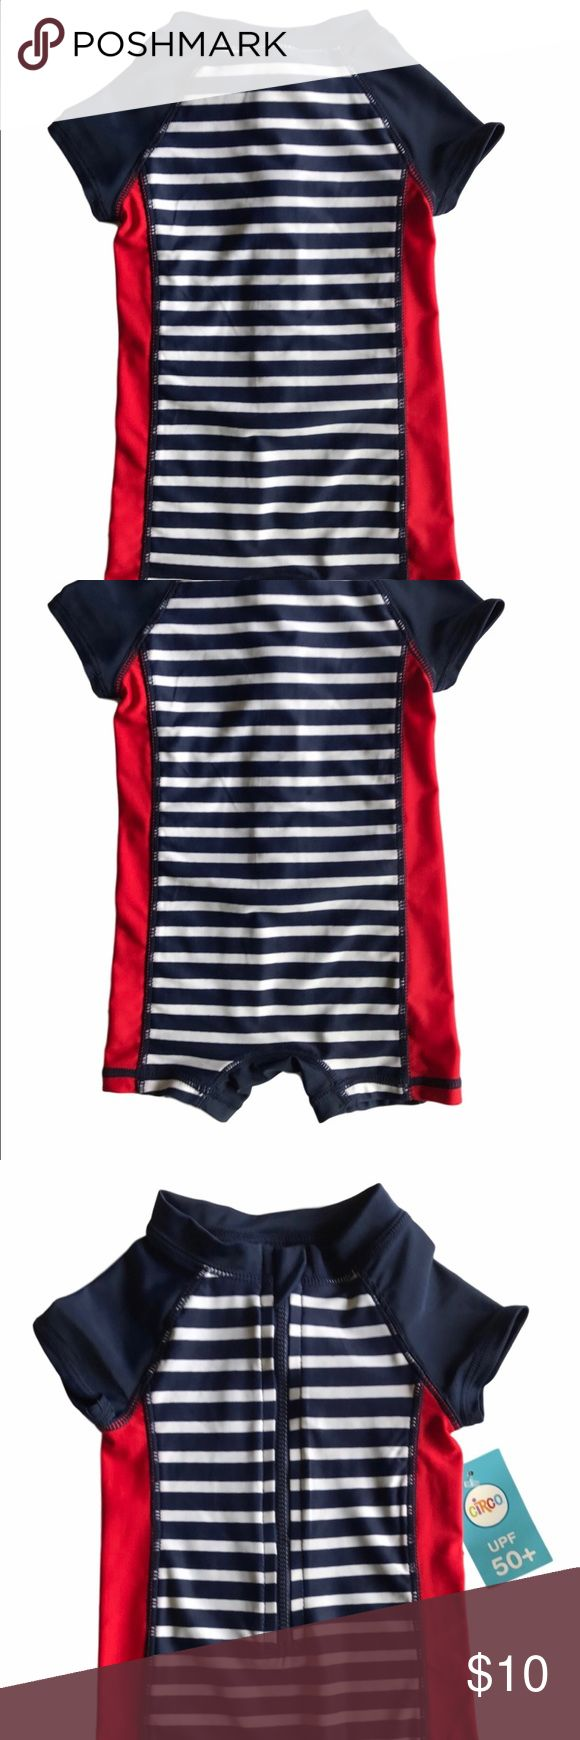 Circo Unisex Surfer Suit Size 3-6m * 82% Polyester  * 18% Spandex  * Made in Indonesia  * Back zip  * 3-6 months Circo Swim One Piece